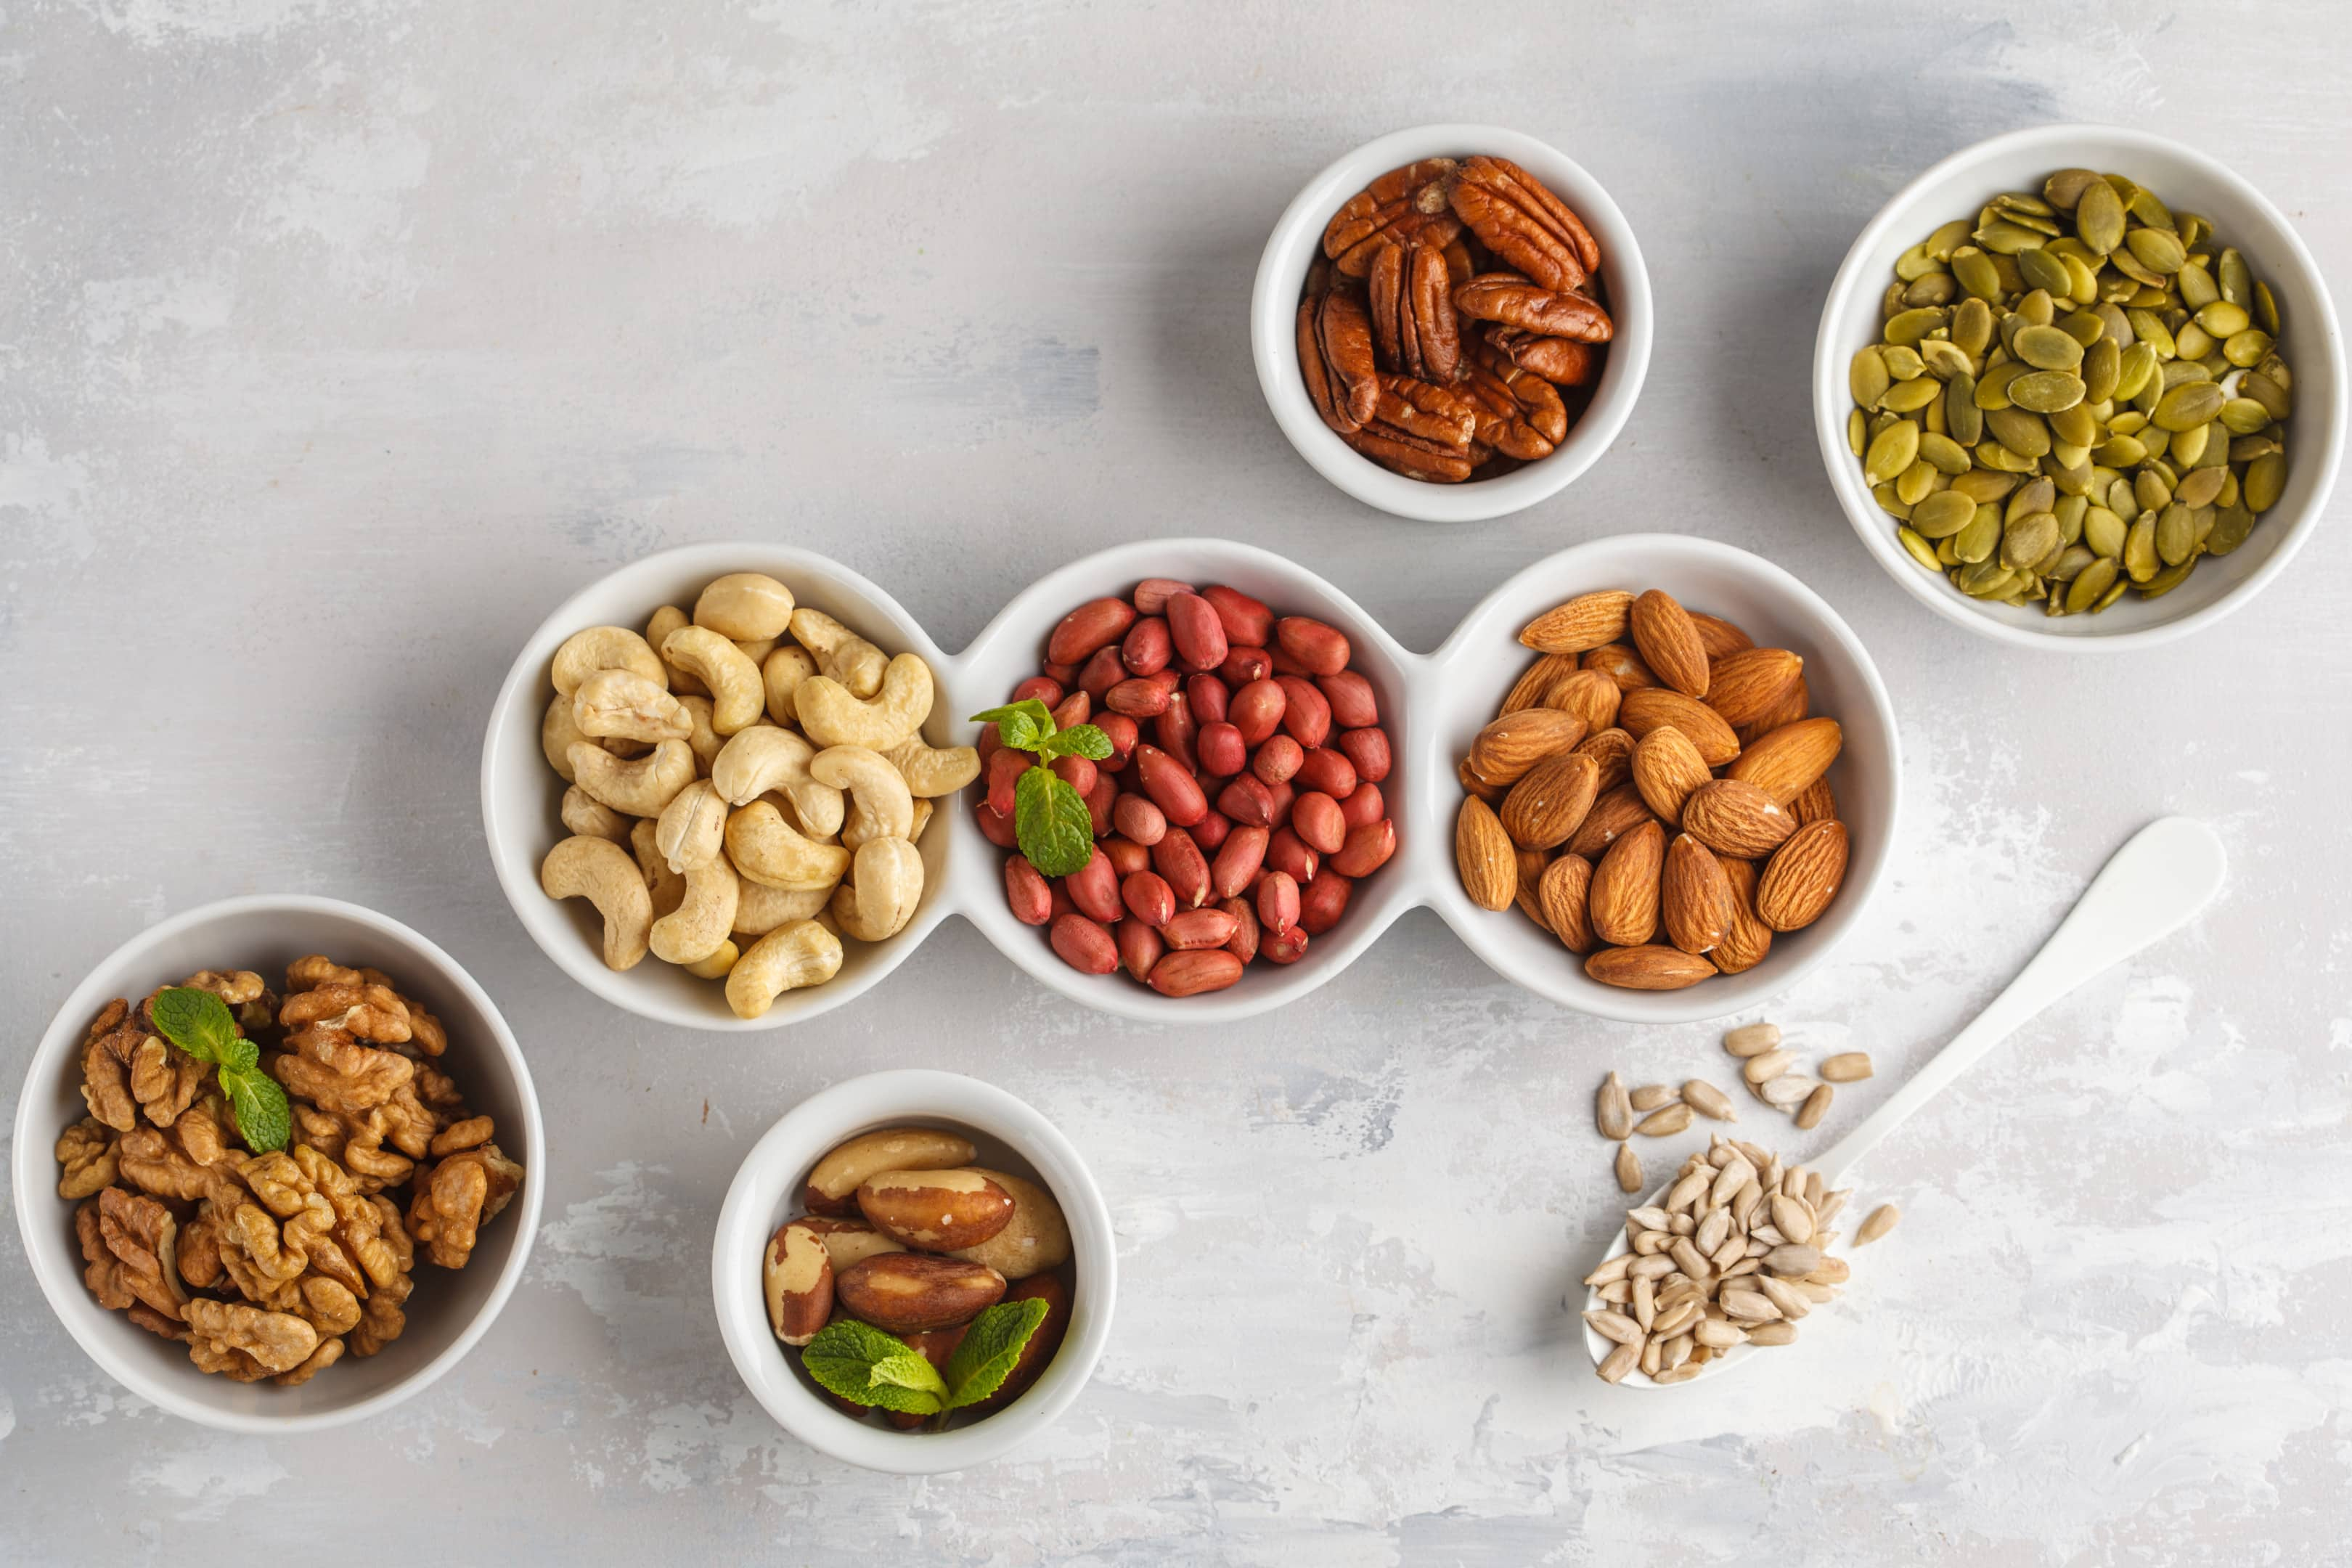 Variety of nuts and seeds in white bowls on gray background